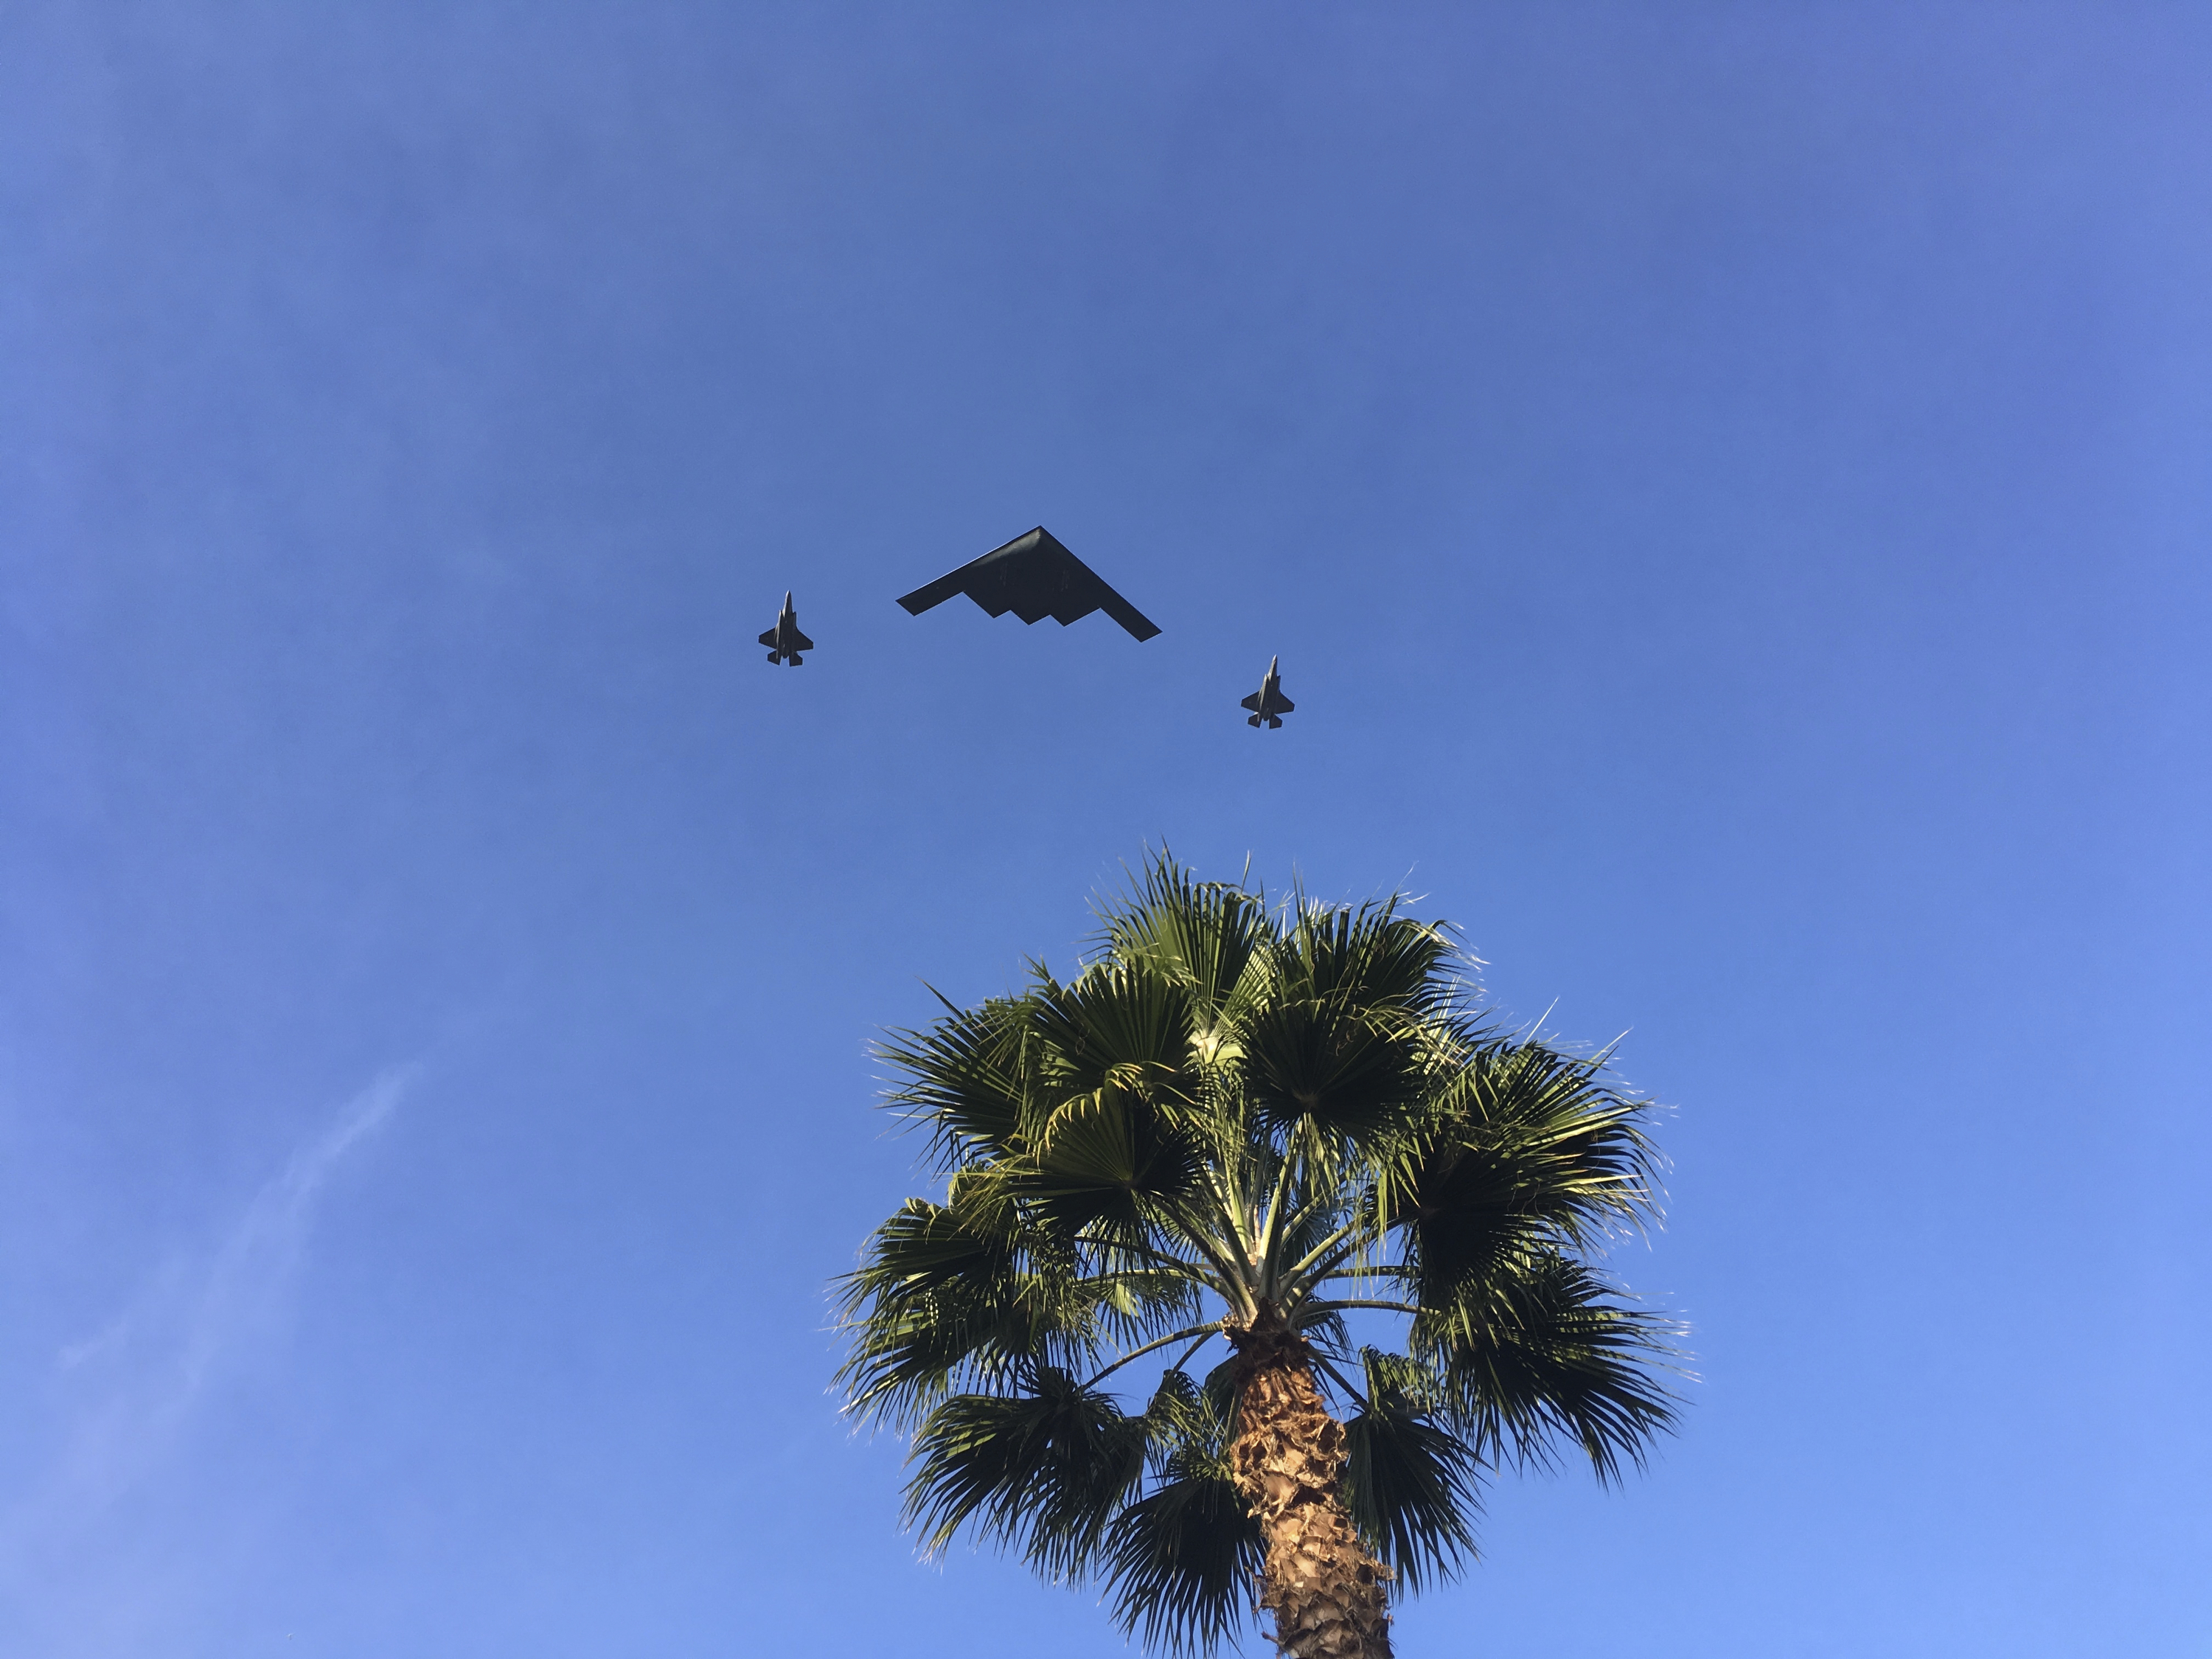 "A B-2 Spirit, also known as the Stealth Bomber, and two fighters jets fly over the 2018 Rose Parade route in Pasadena, Calif., Monday, Jan. 1, 2018. The 129th annual parade got started Monday in Pasadena with an announcement by the grand marshal, actor Gary Sinise, and a military flyover. The theme of the 2018 parade is ""Making a Difference"" and Sinise was chosen to lead the proceedings because of his devotion to veteran's issues. (AP Photo/John Antczak)"